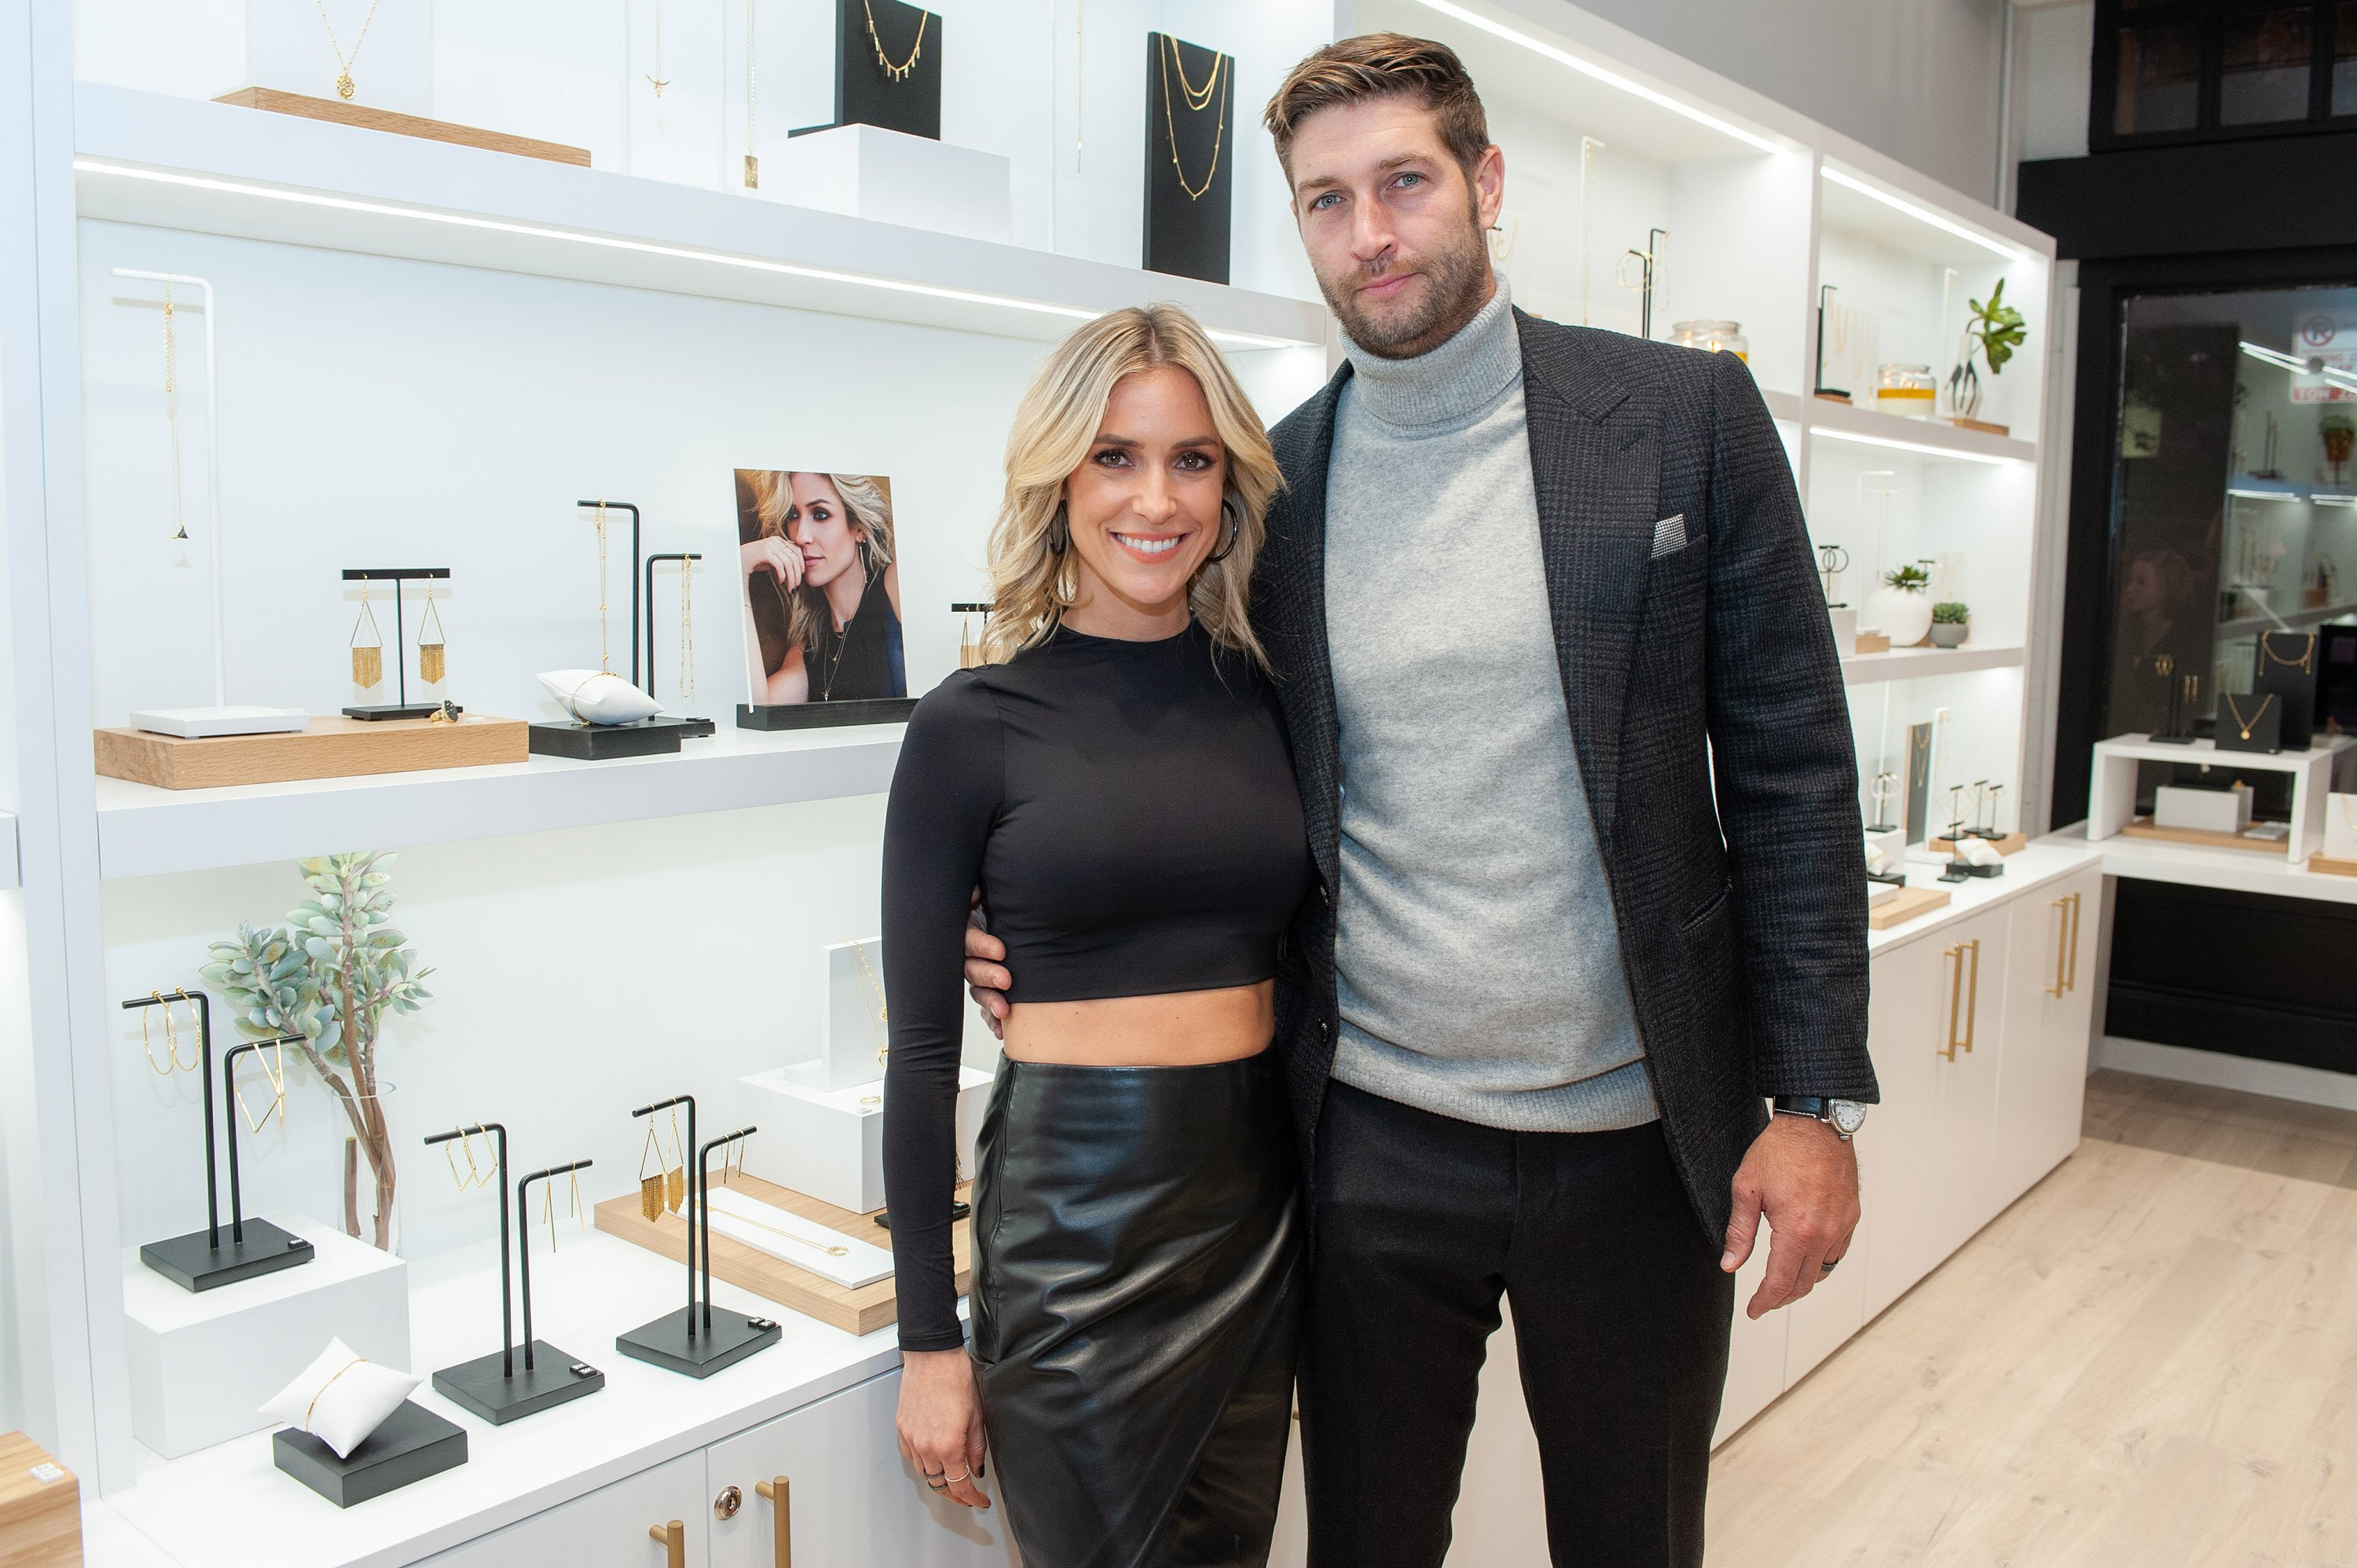 Image Credits: Getty Images / Todd Williamson | Kristin Cavallari and Jay Cutler pose together